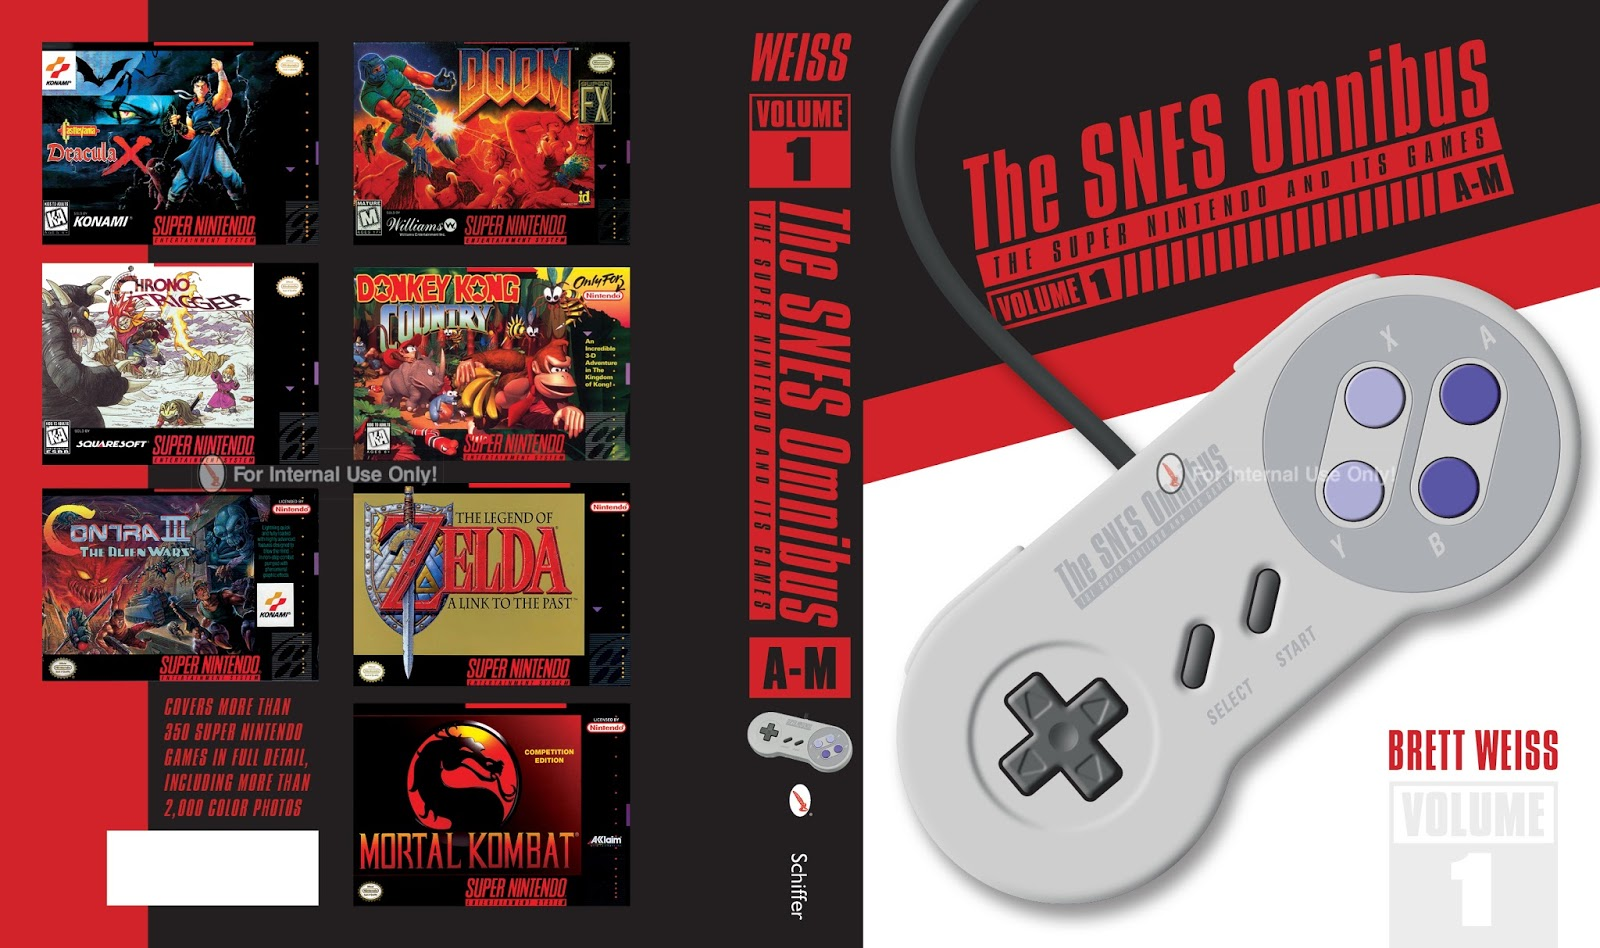 The SNES Omnibus is not just a wealth of information, but it is stylish as well.